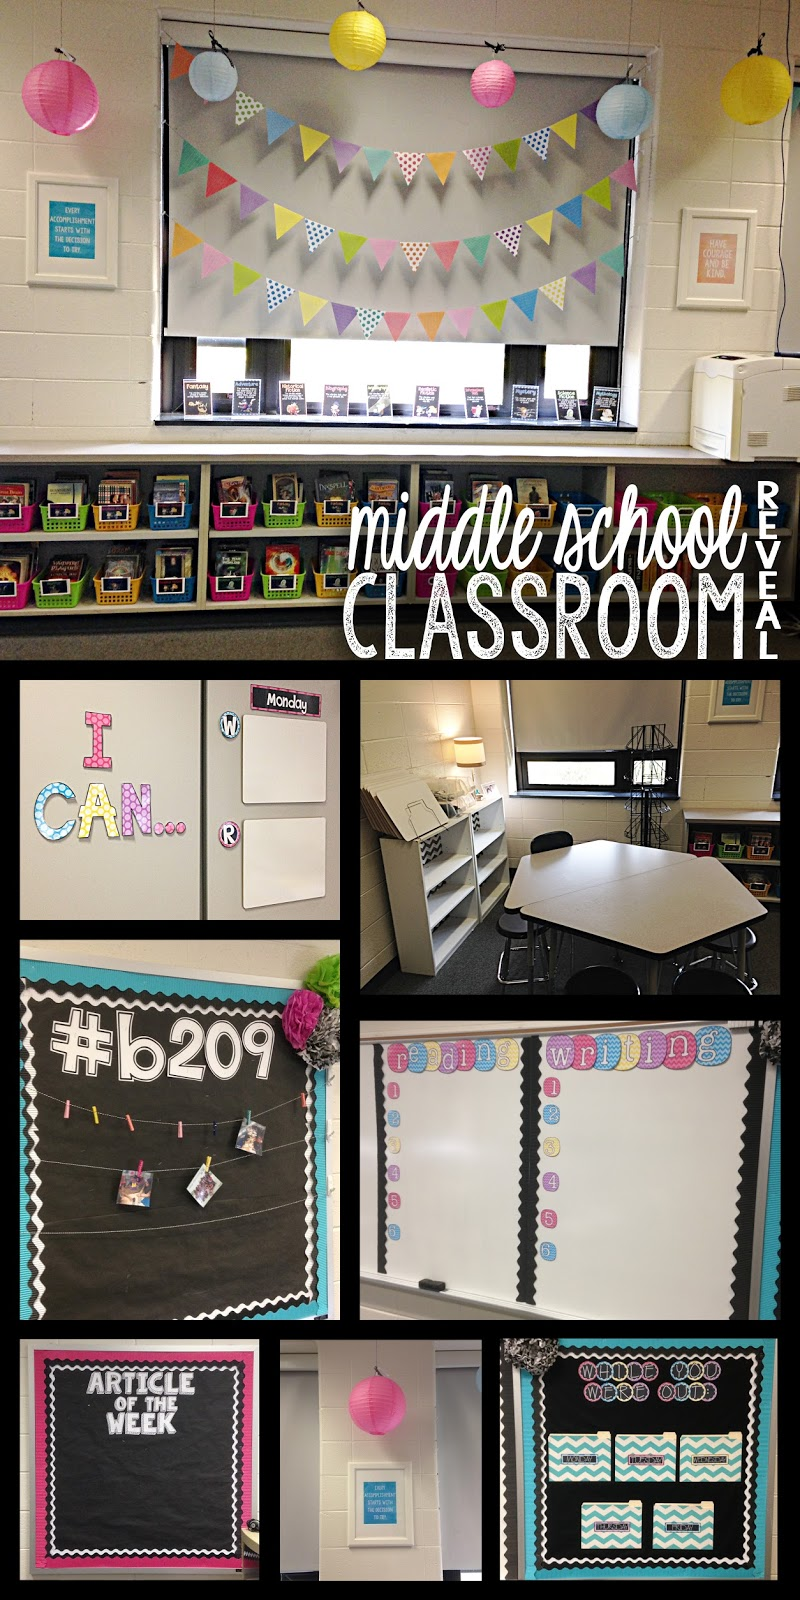 Classroom Decor Ideas Middle School : Musings from the middle school classroom reveal